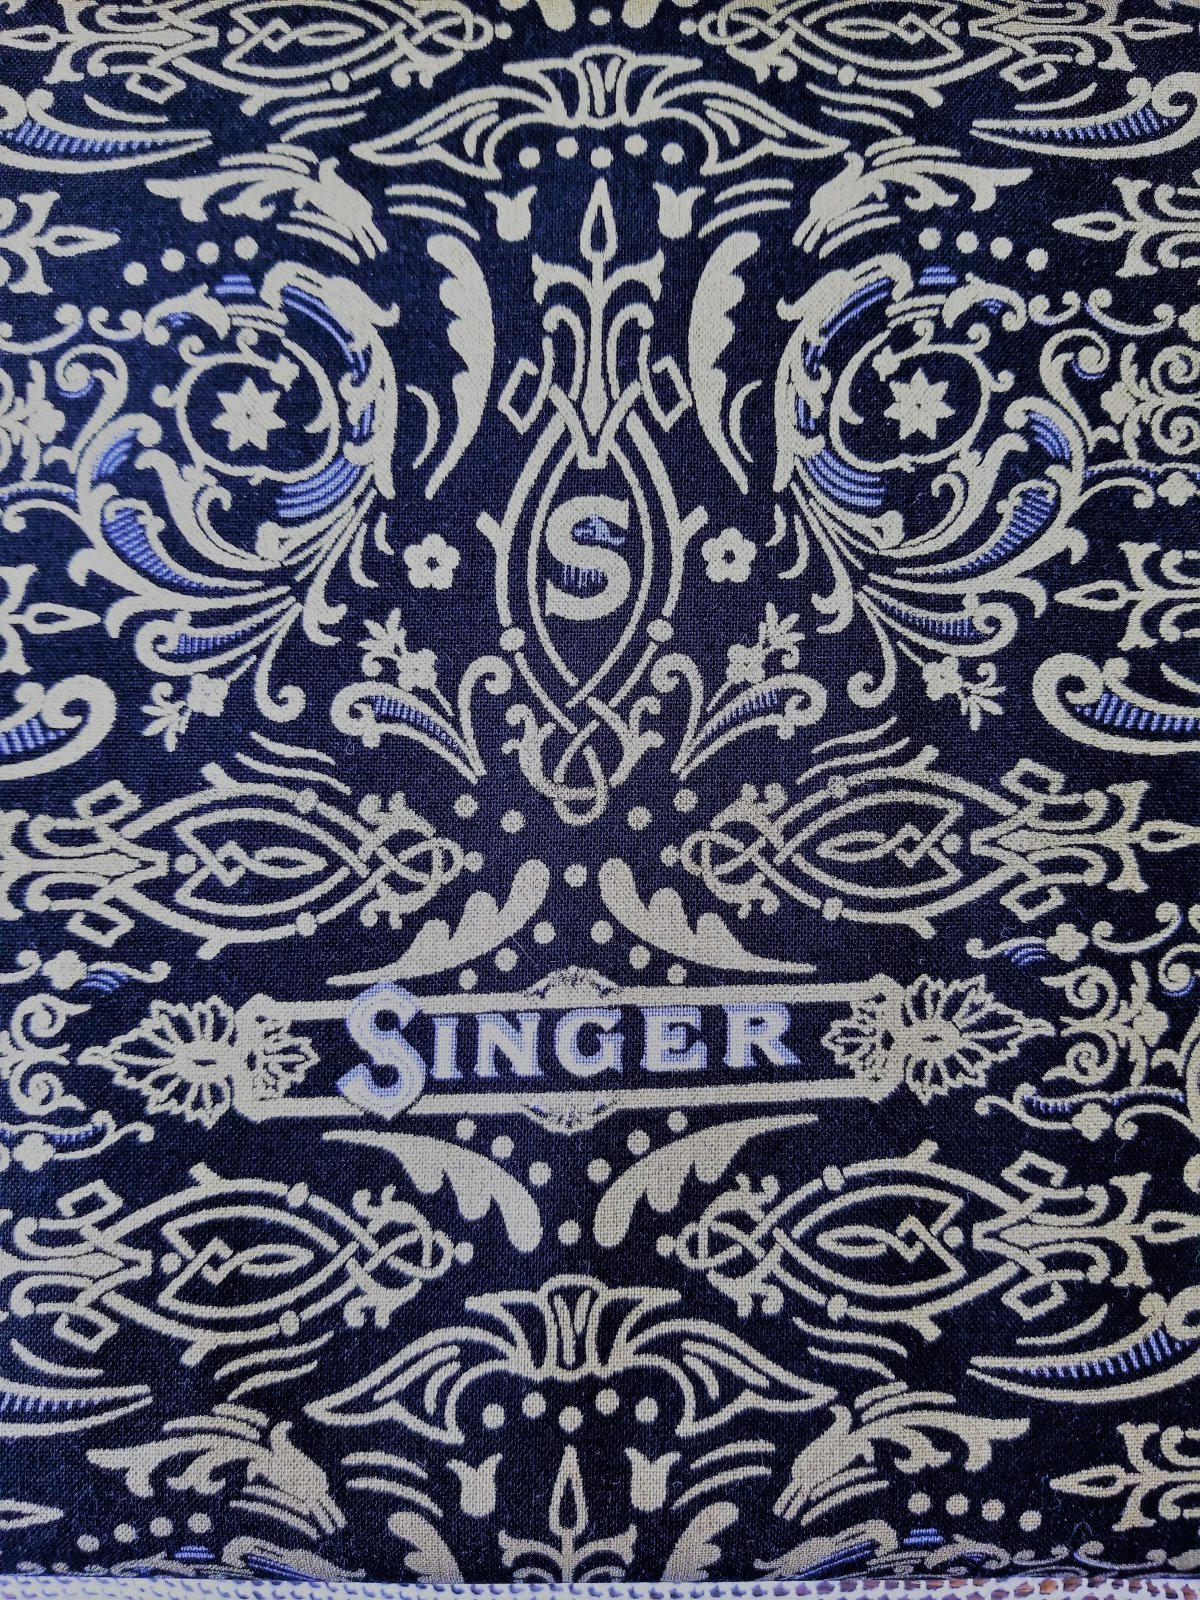 Sewing with Singer Black Background Gold Gild